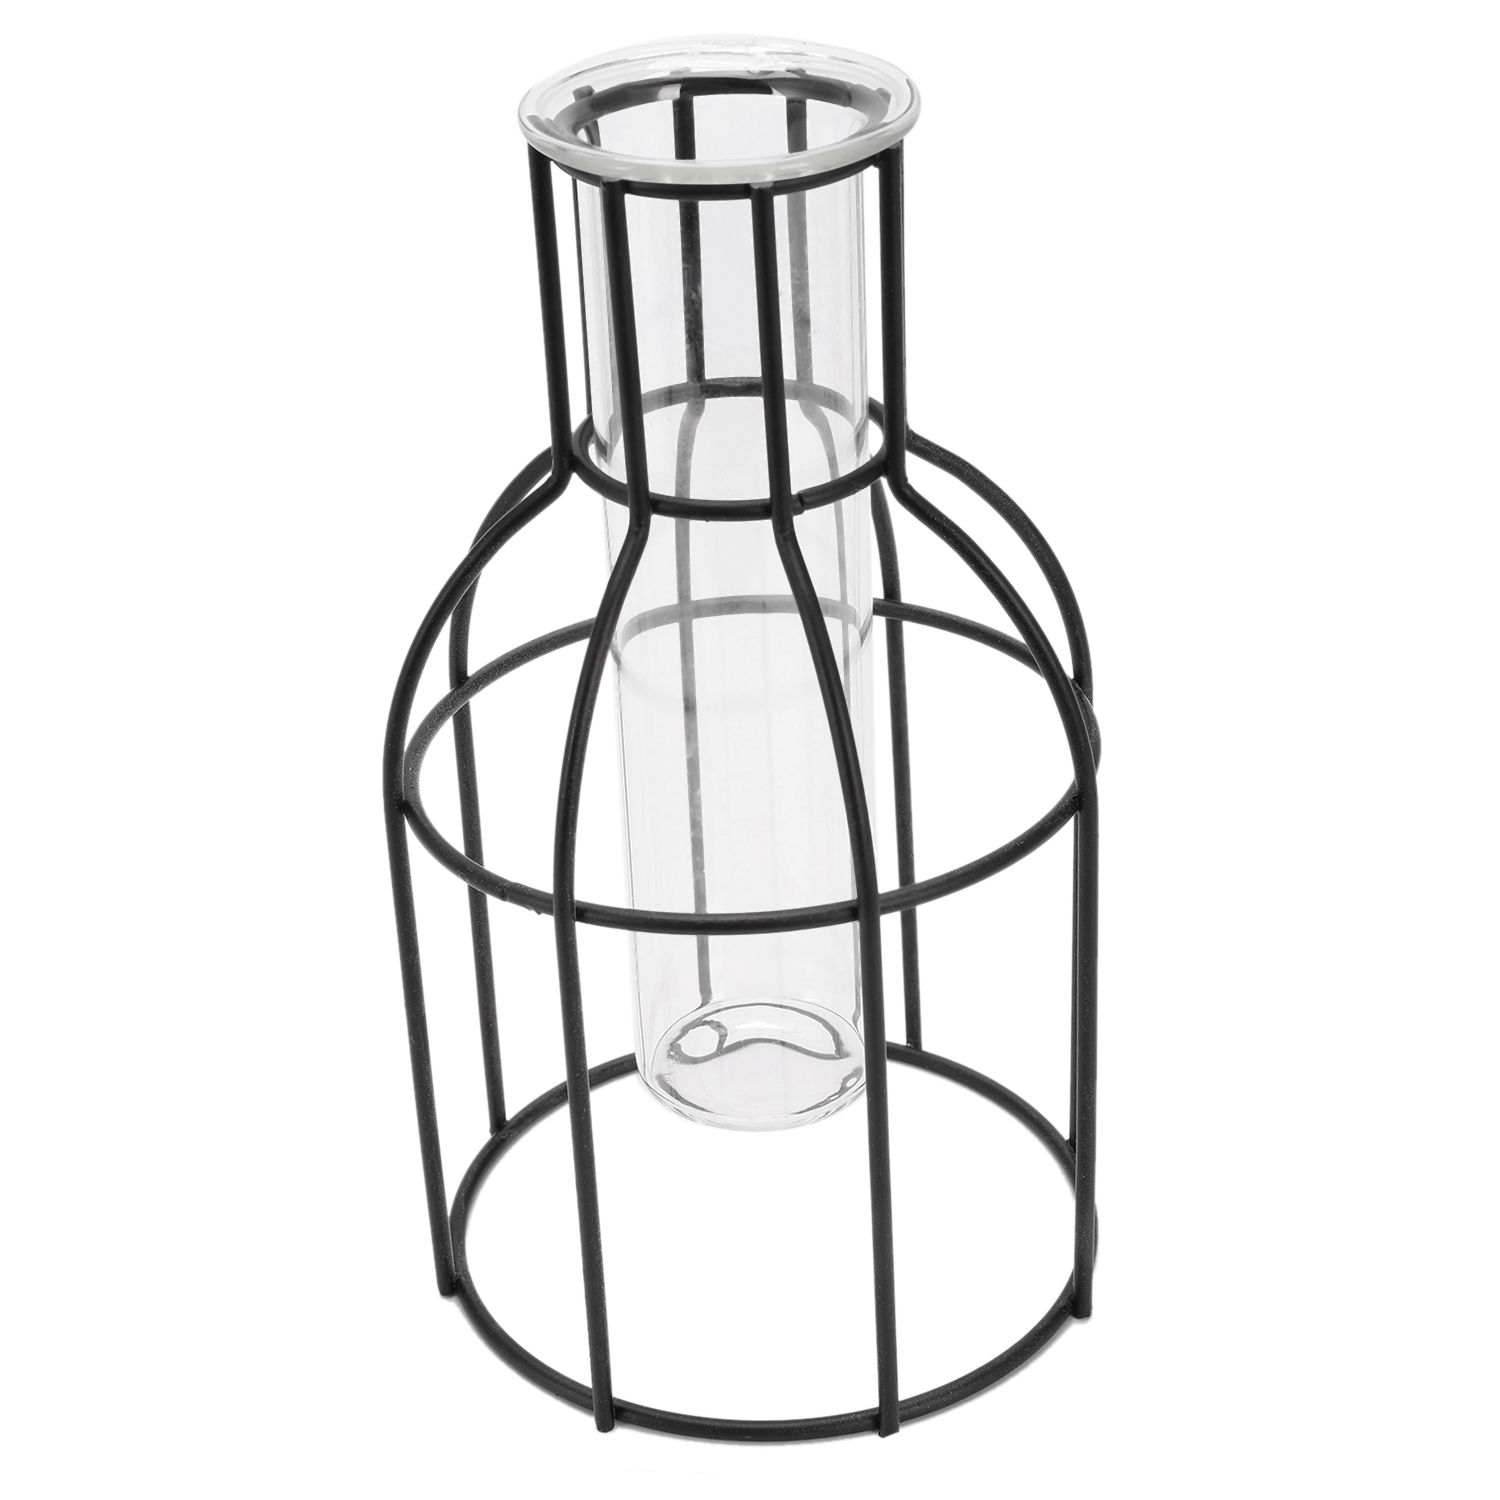 JEYL Nordic Style 3D Glass Iron Art Geometric Vase with Cuvette Tabletop Plant Bonsai Flower Wedding Home Decoration Accessori